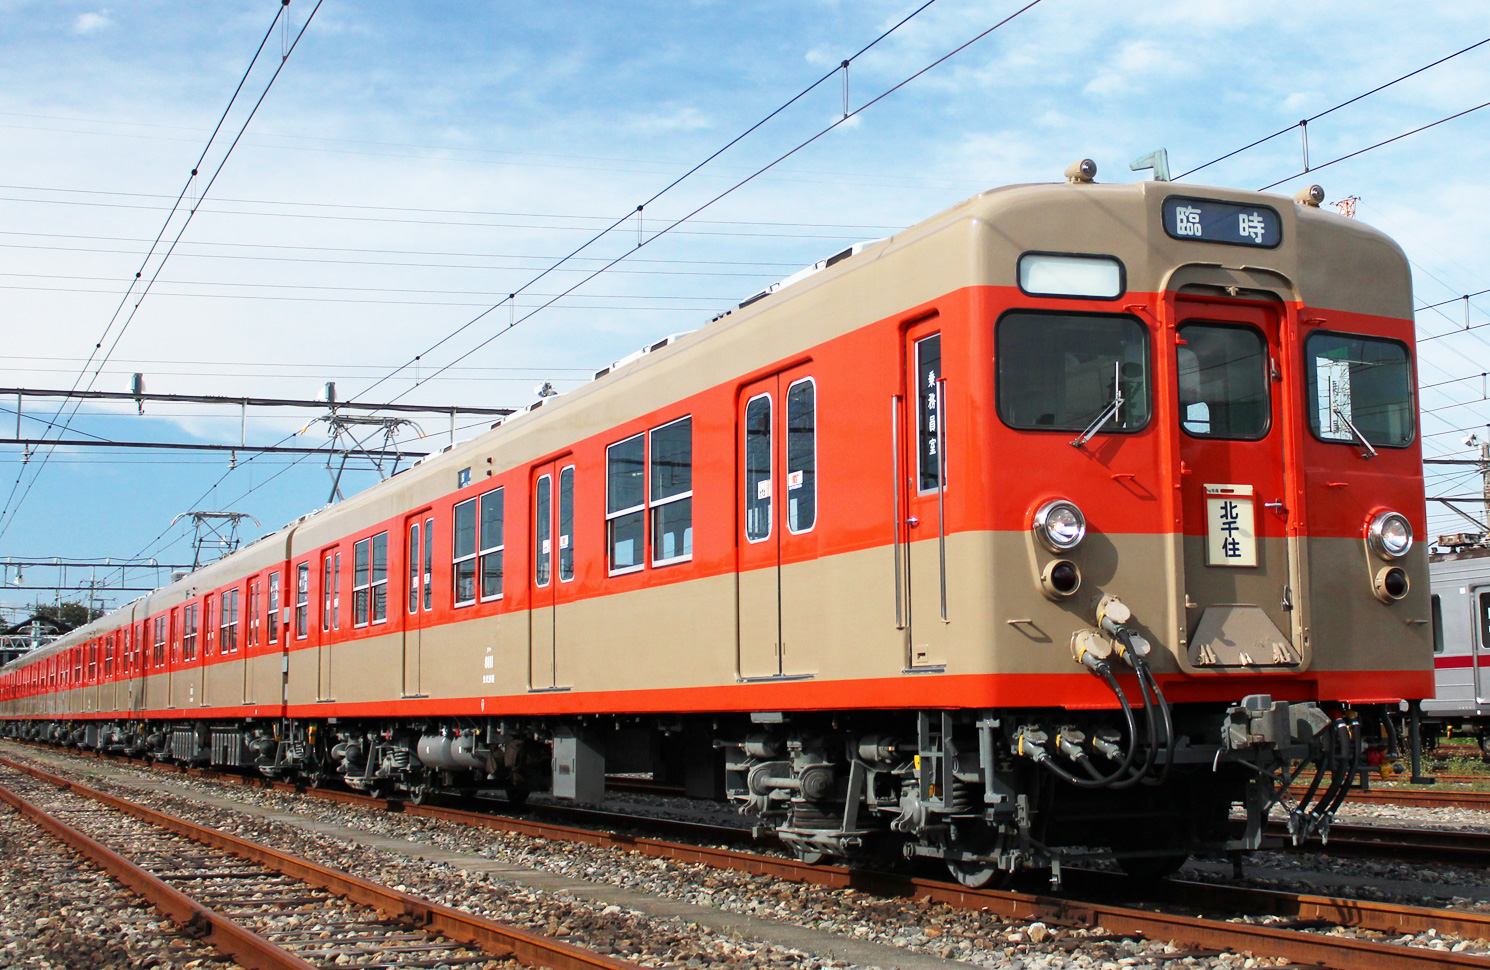 Tobu Museum Holdings Vehicle: The 8000 Series, No. 8111 Train (in operating condition)